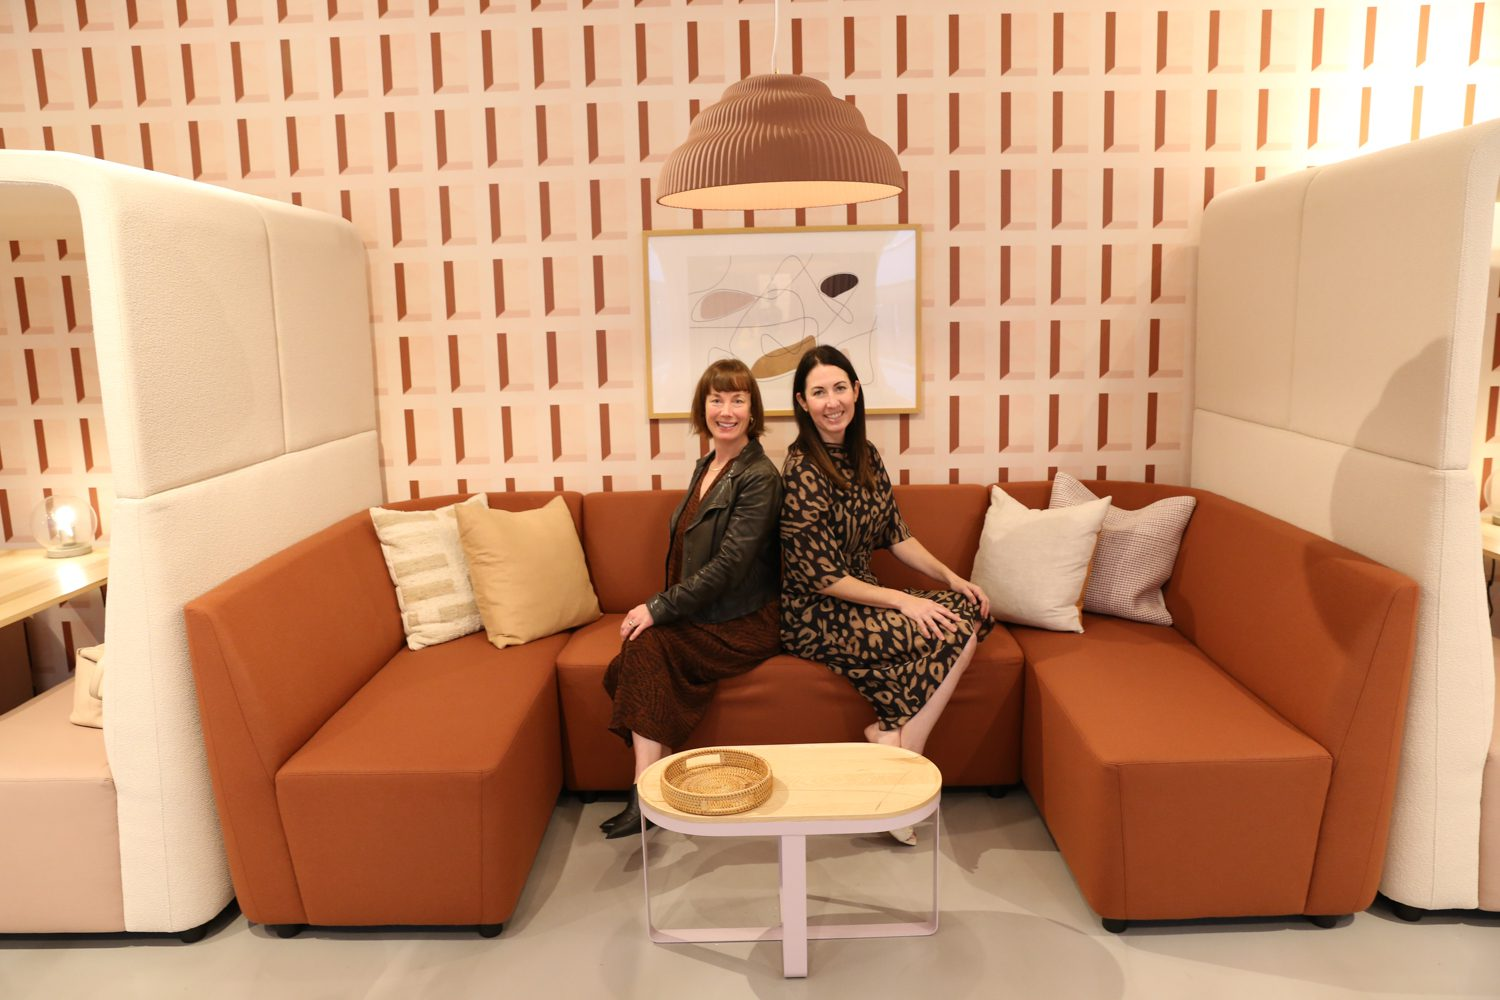 Casey Keasler, interior designer, and Jessica Ahlering, director of marketing and product management at Hightower with the FourLikes sofa.